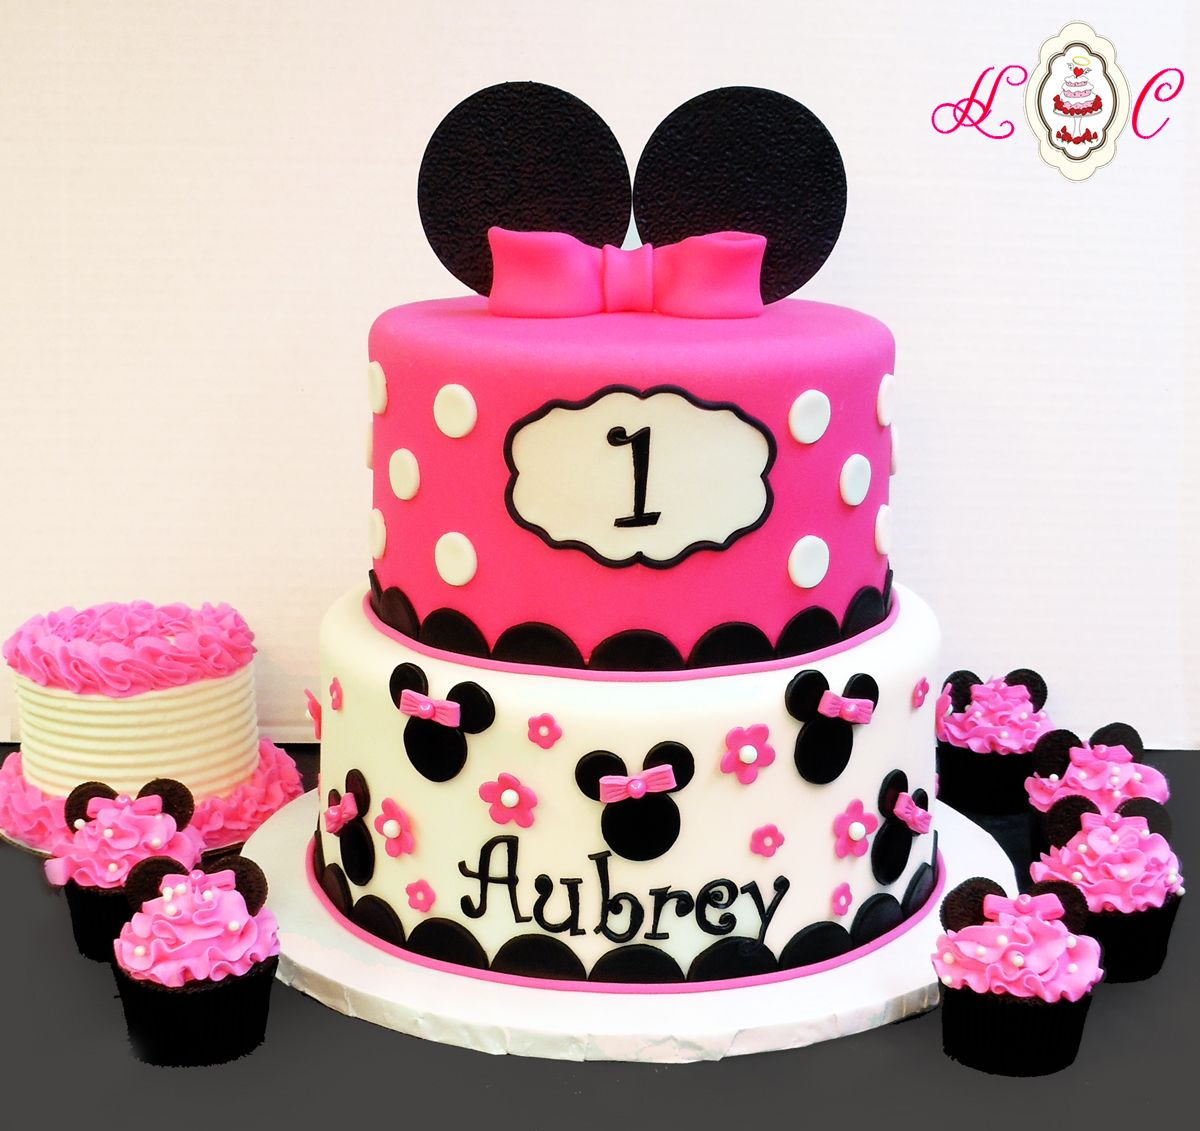 Pleasant Minnie Mouse First Birthday Cake In Hot Pink Black With Matching Funny Birthday Cards Online Ioscodamsfinfo